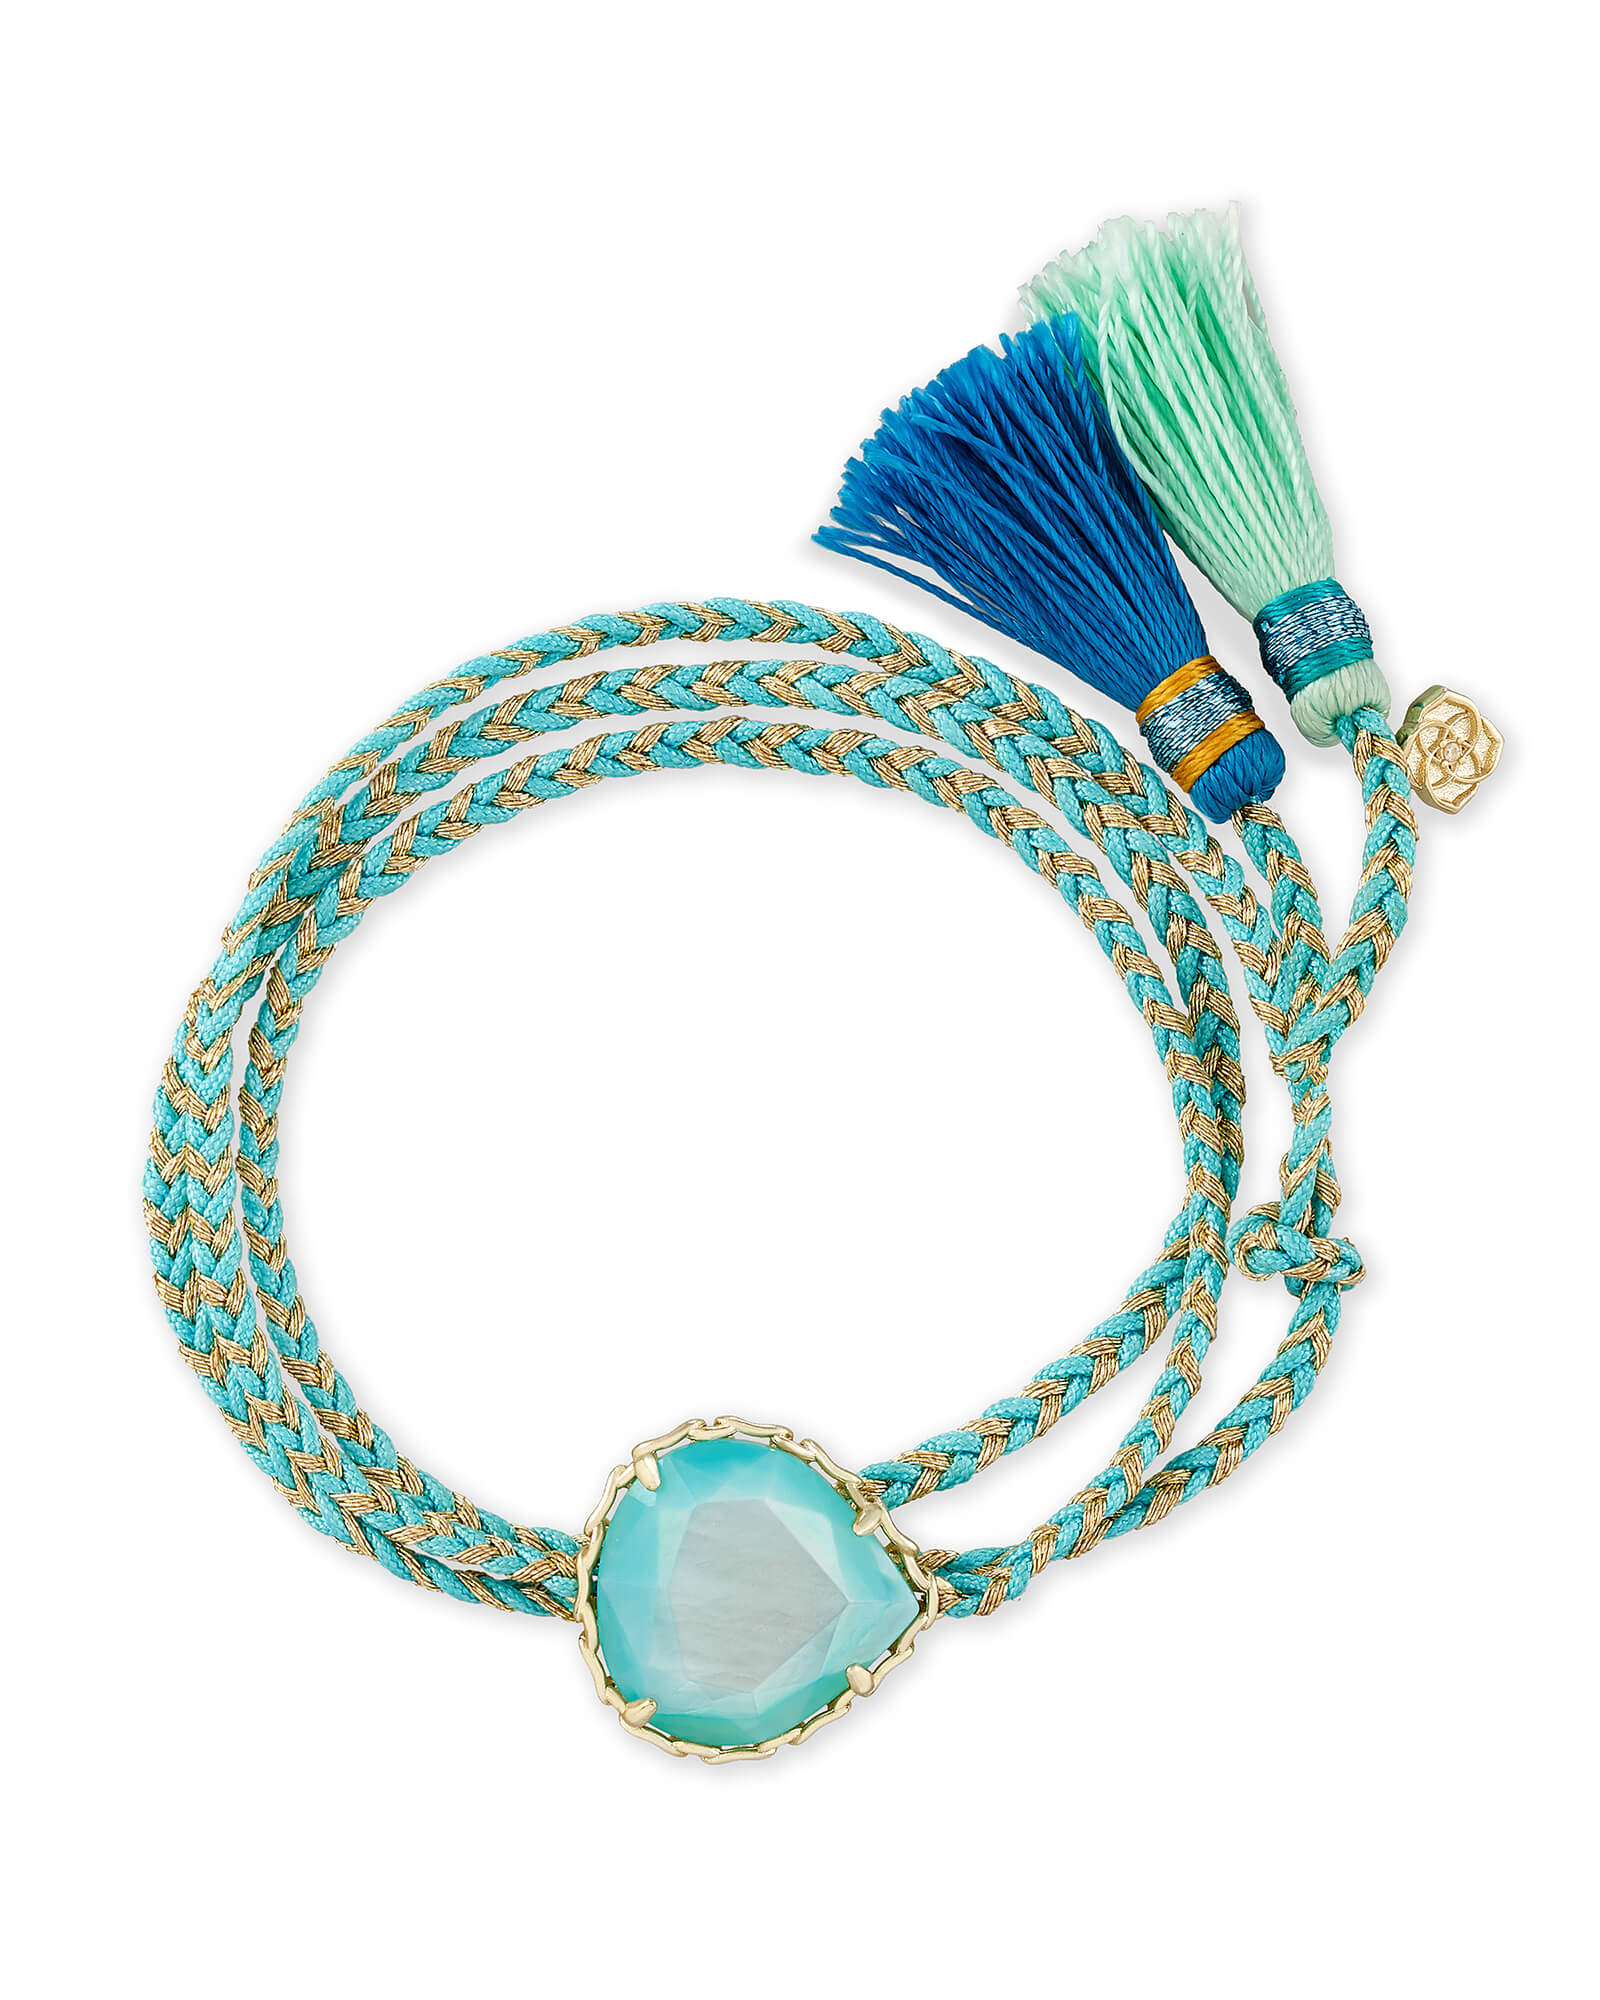 Kenzie Aqua Cord Friendship Bracelet In Aqua Illusion